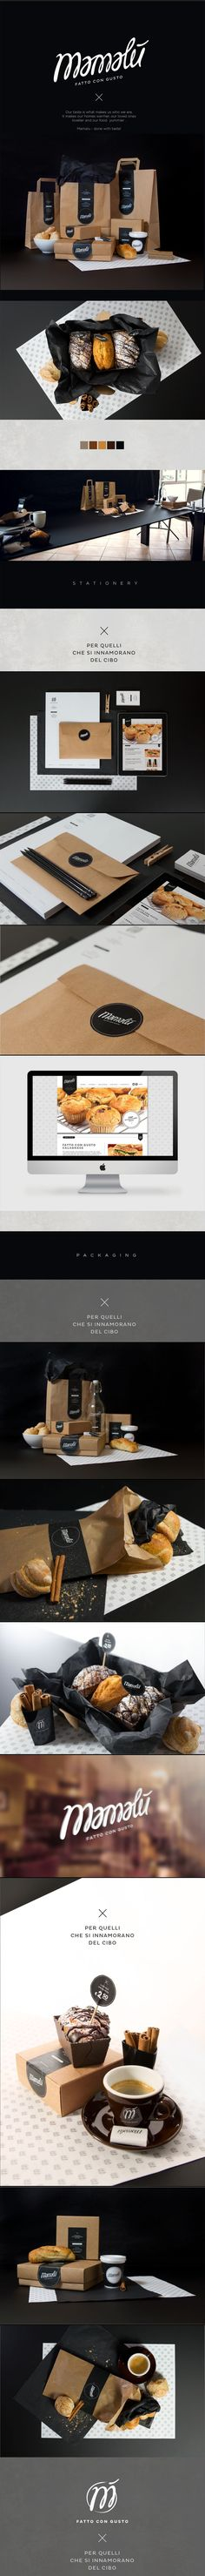 Mamalu banding/identity design by Anastasia Yakovleva & Alice Paviotti, on Behance